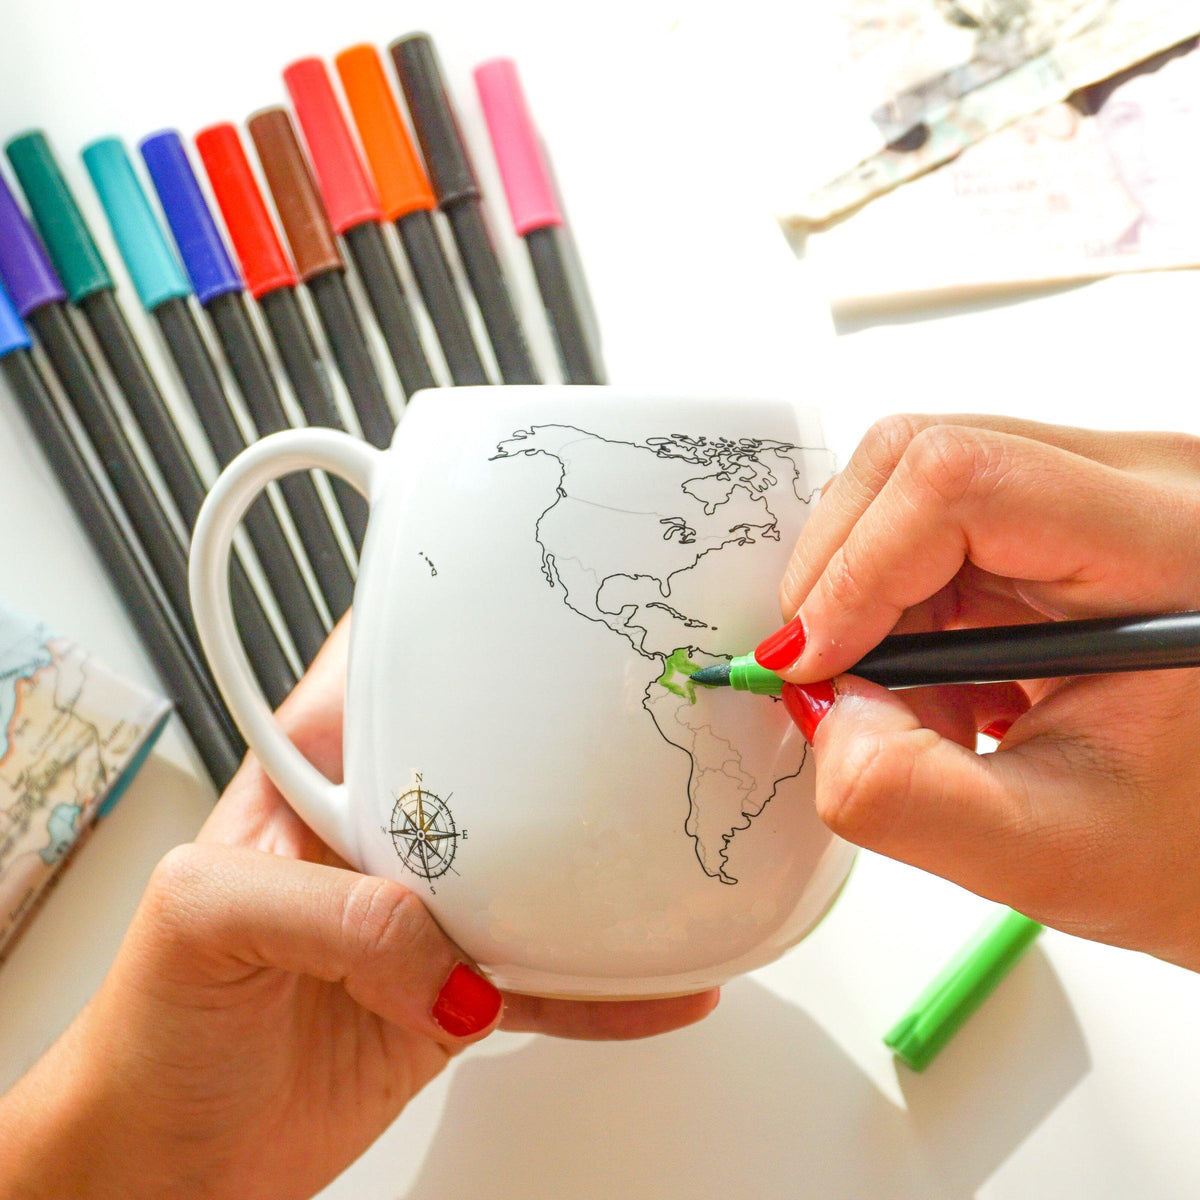 World Mug with Coloring Pen